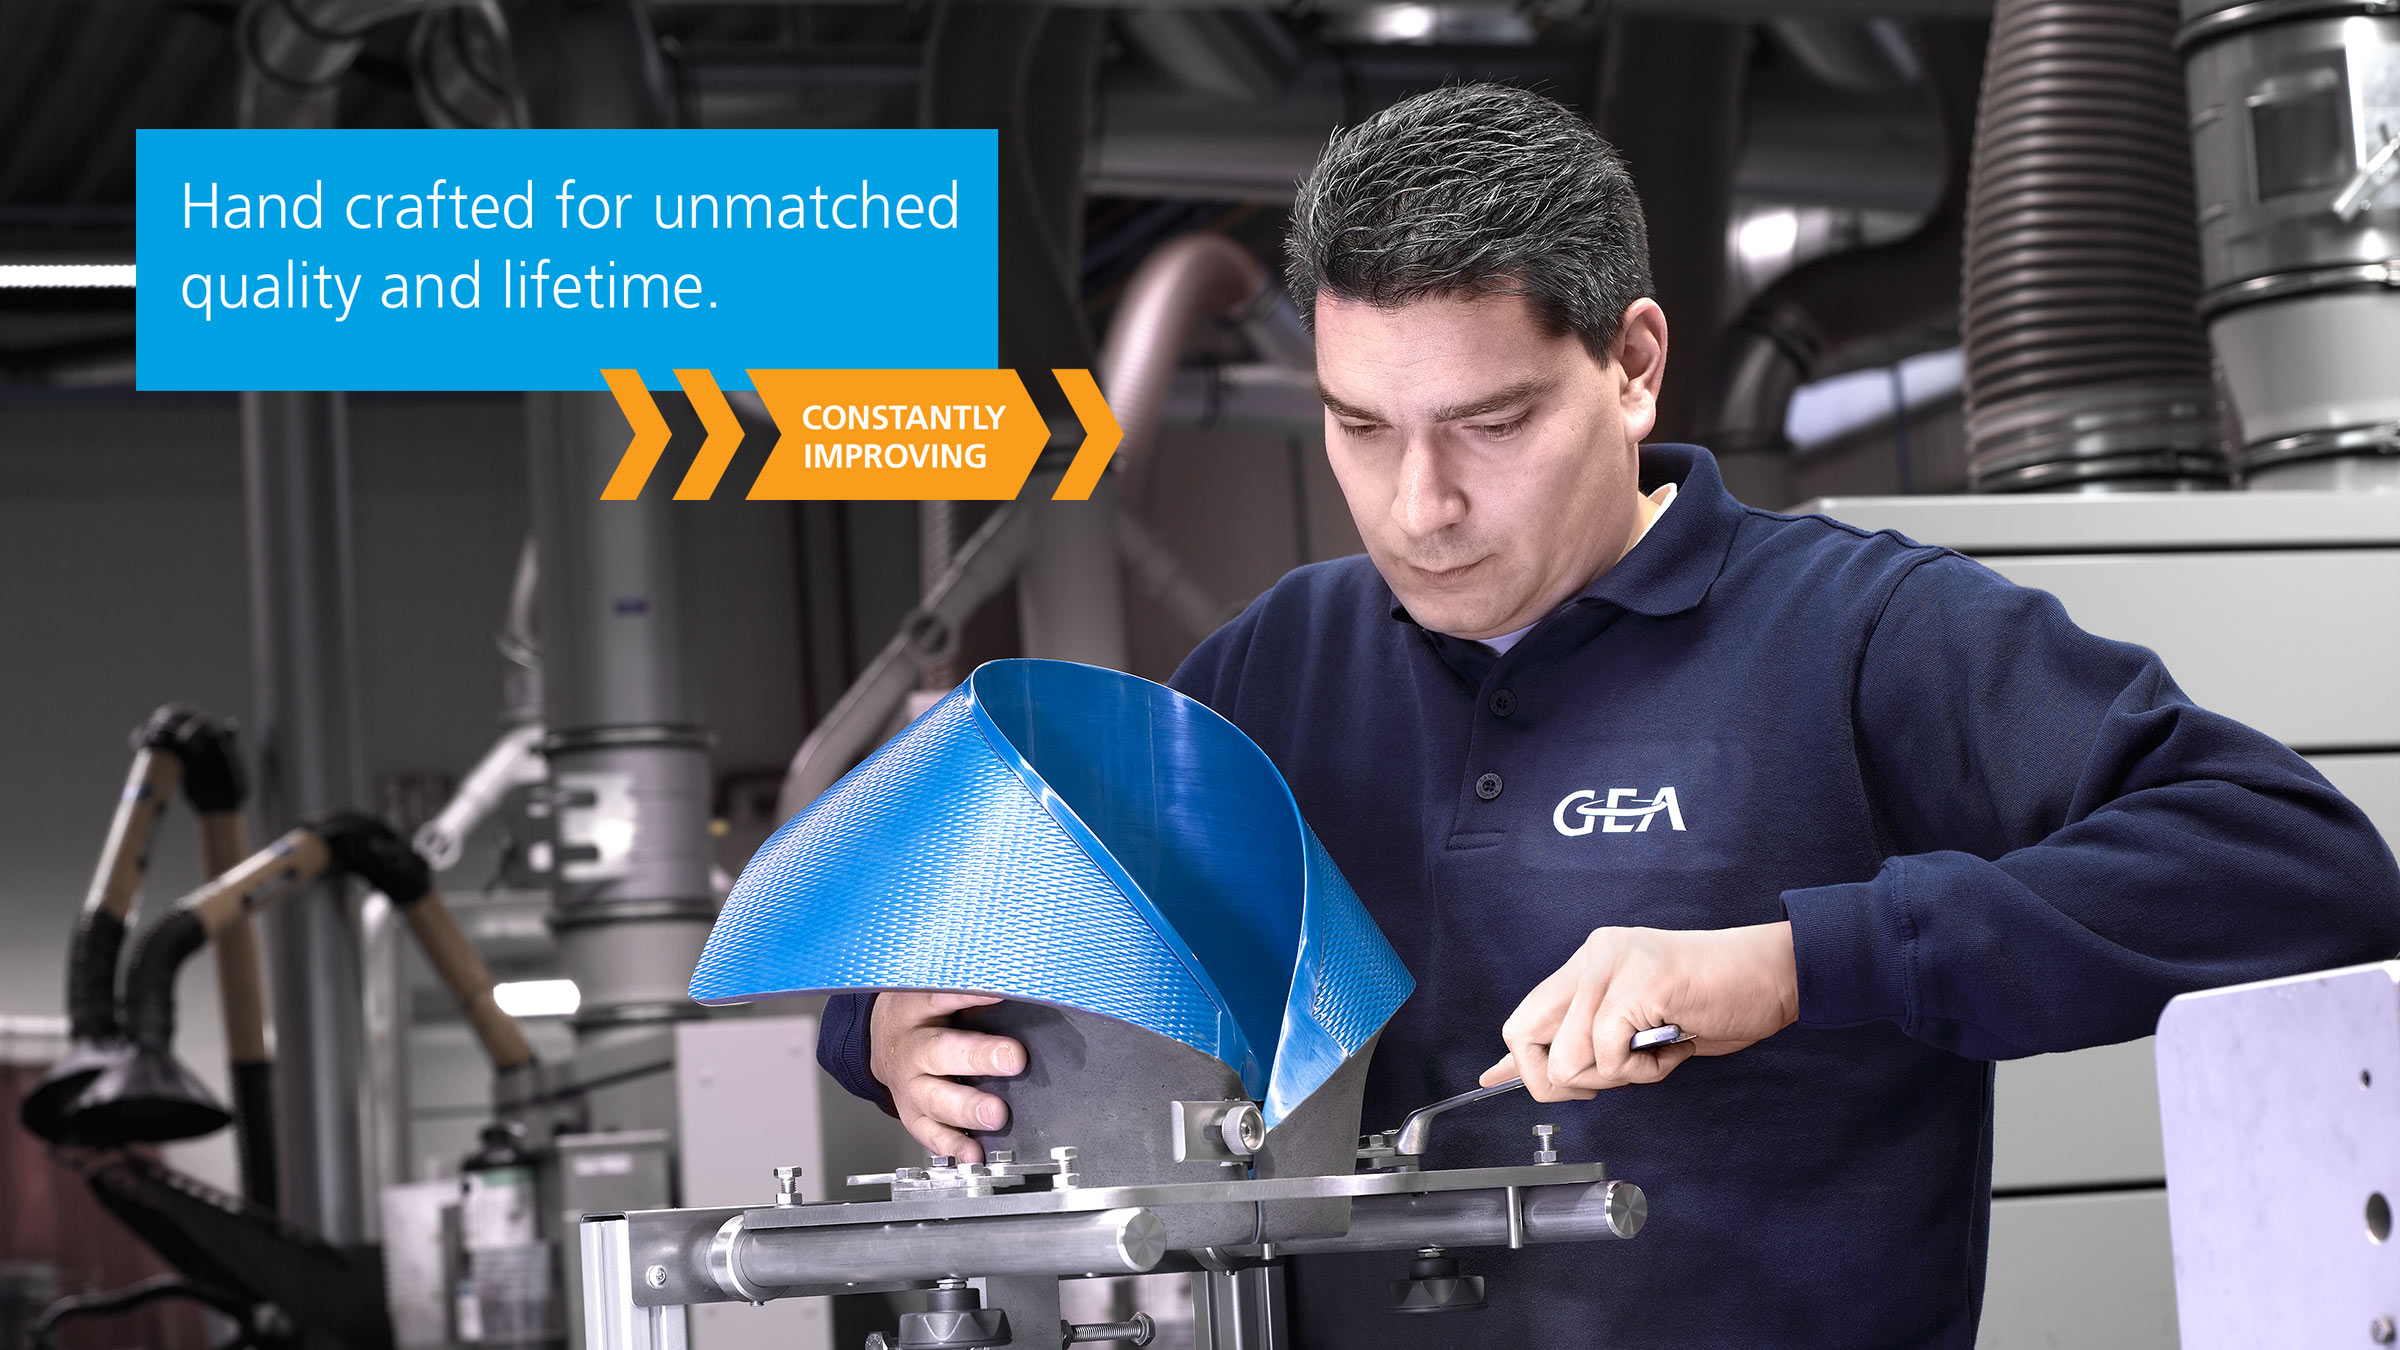 gea smartpacker shoulders